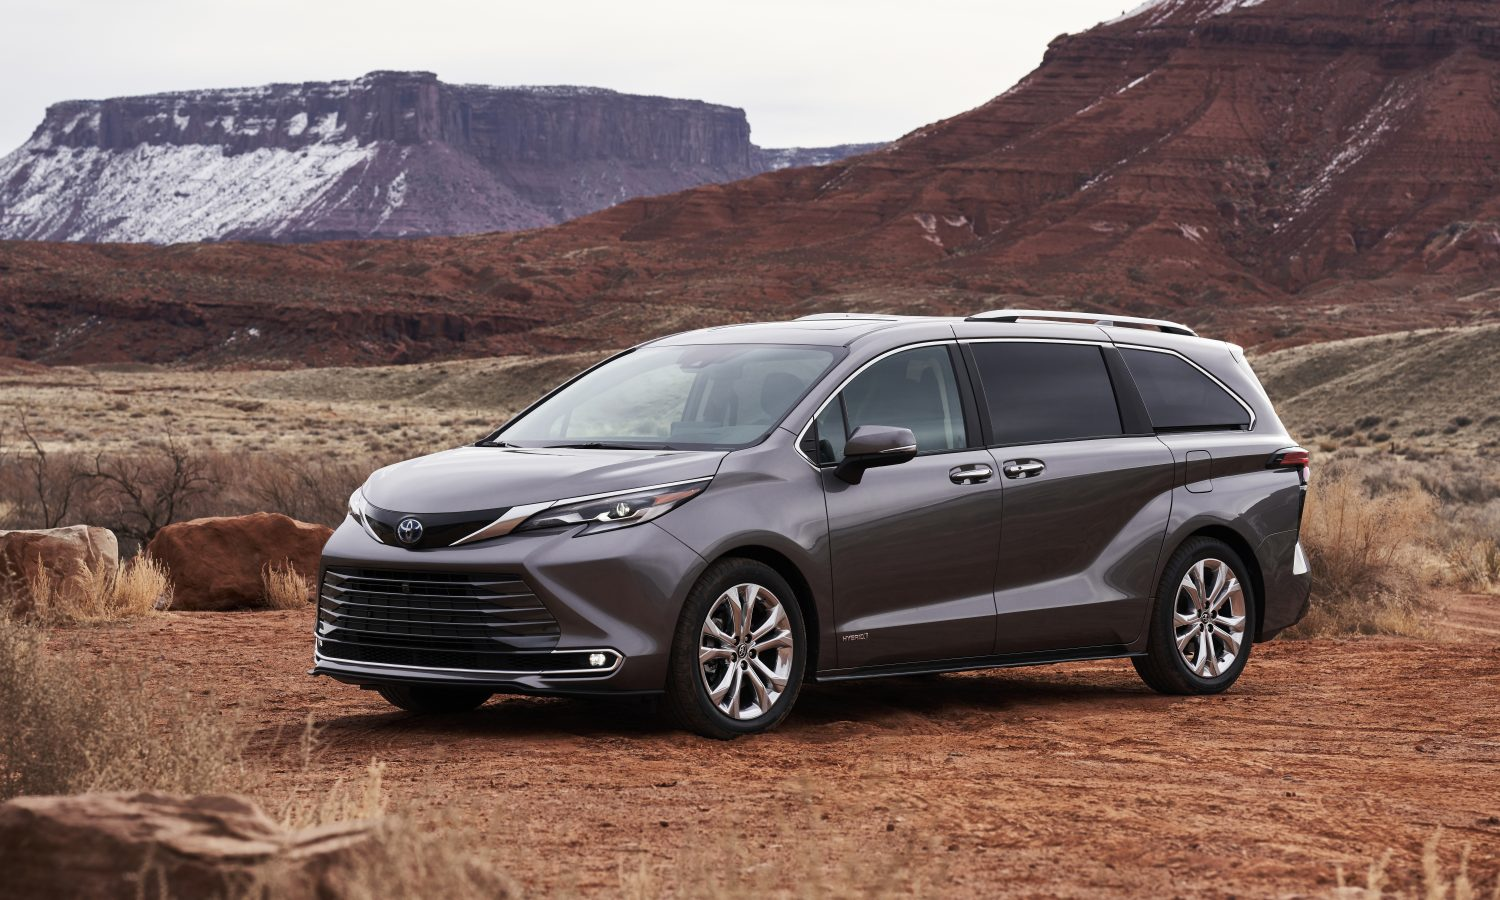 The All-New 2021 Sienna is Already Winning Awards